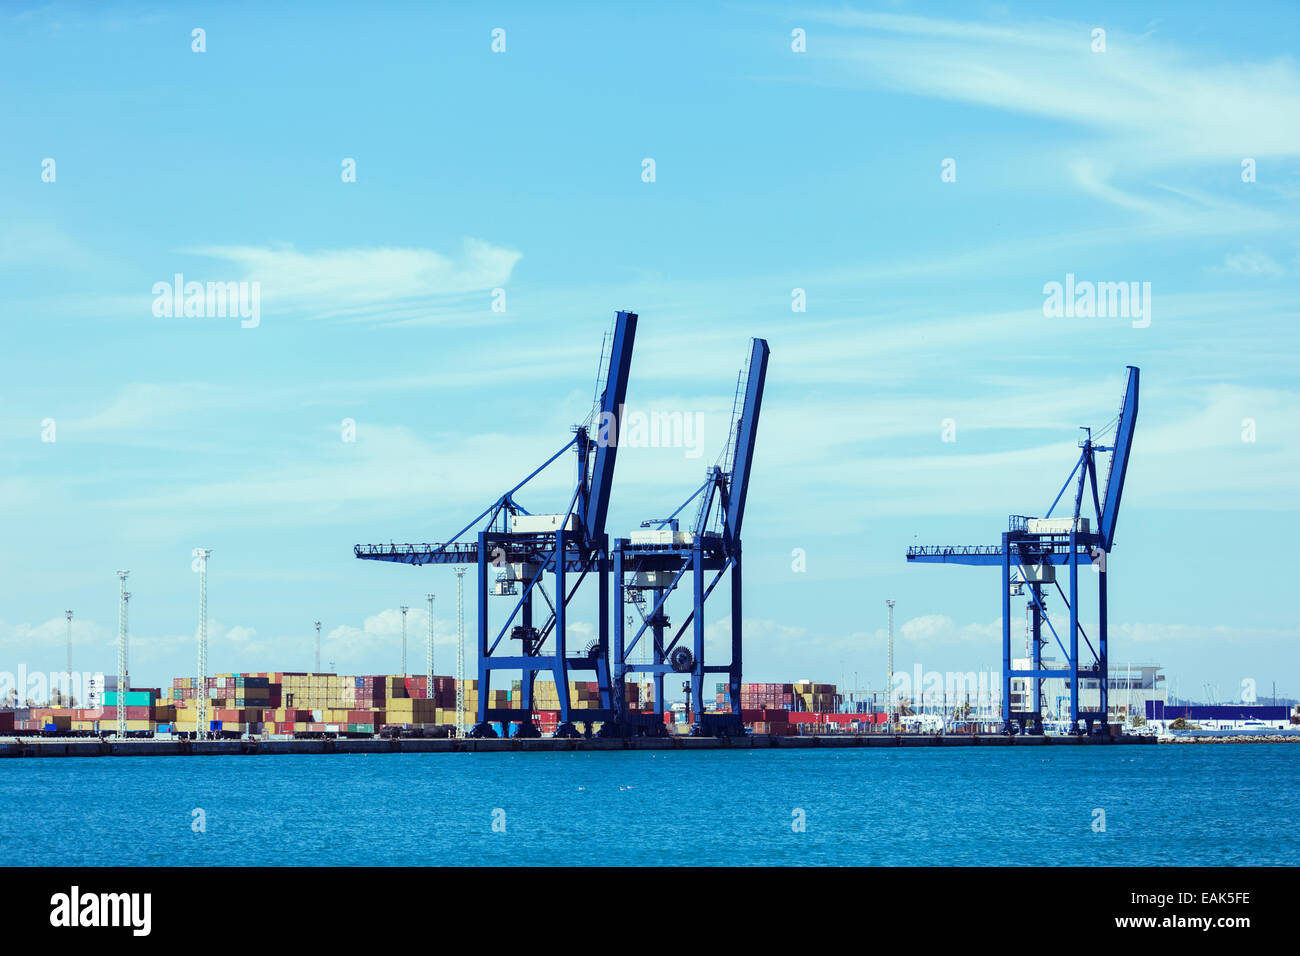 Cranes and cargo containers at waterfront - Stock Image